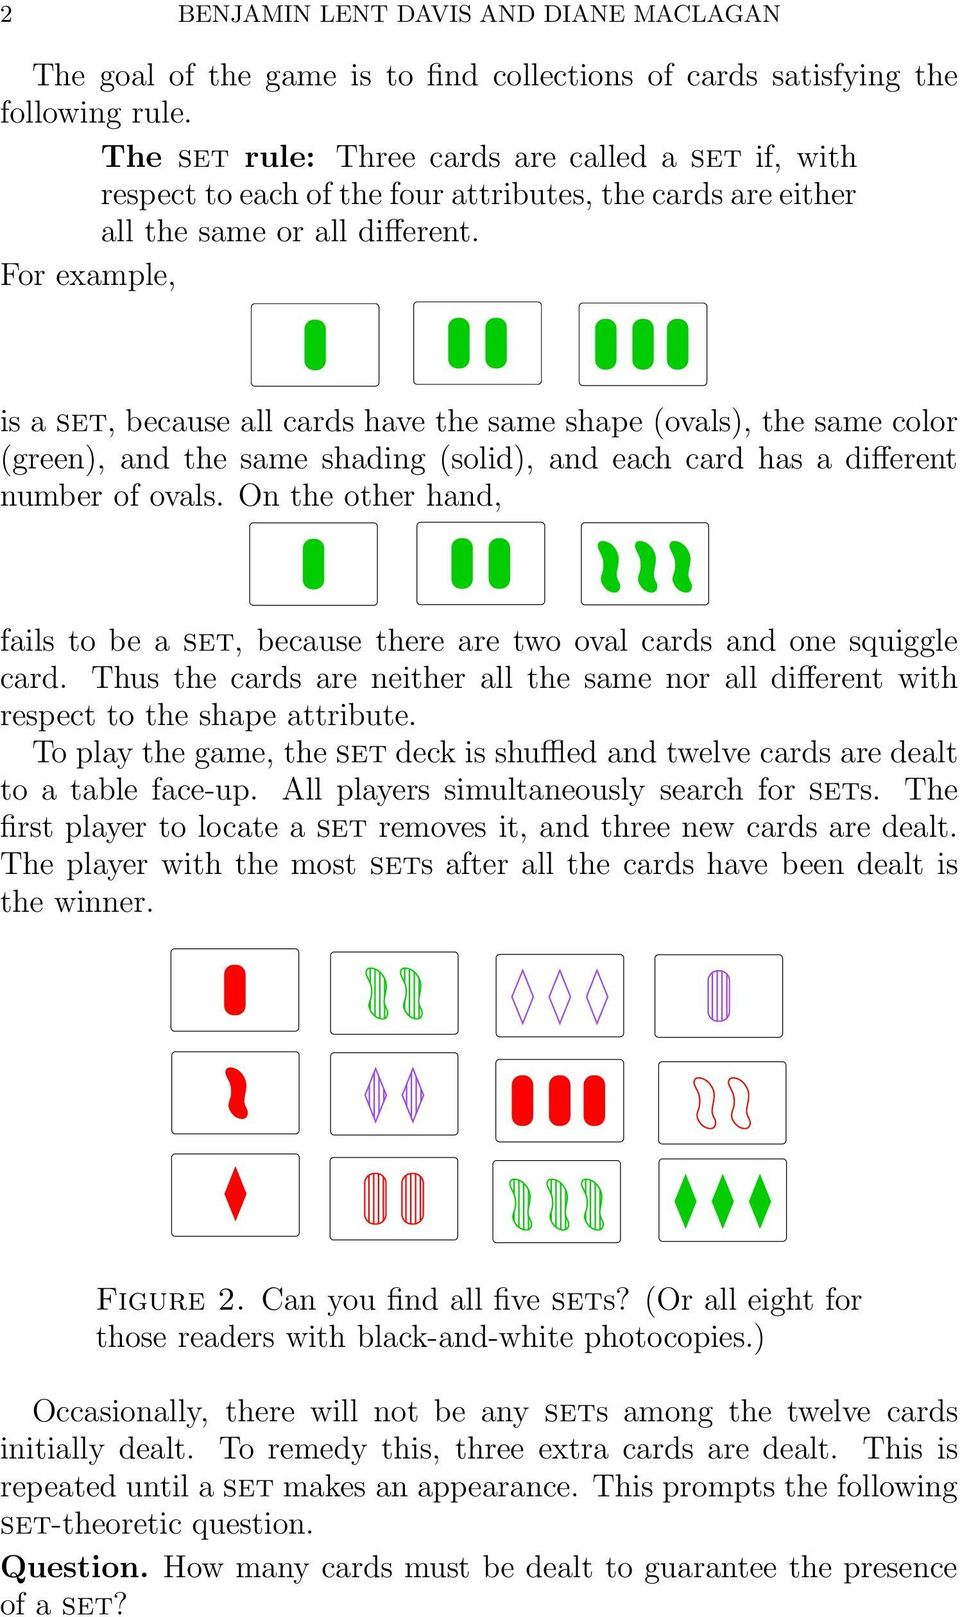 For example, is a set, because all cards have the same shape (ovals), the same color (green), and the same shading (solid), and each card has a different number of ovals.